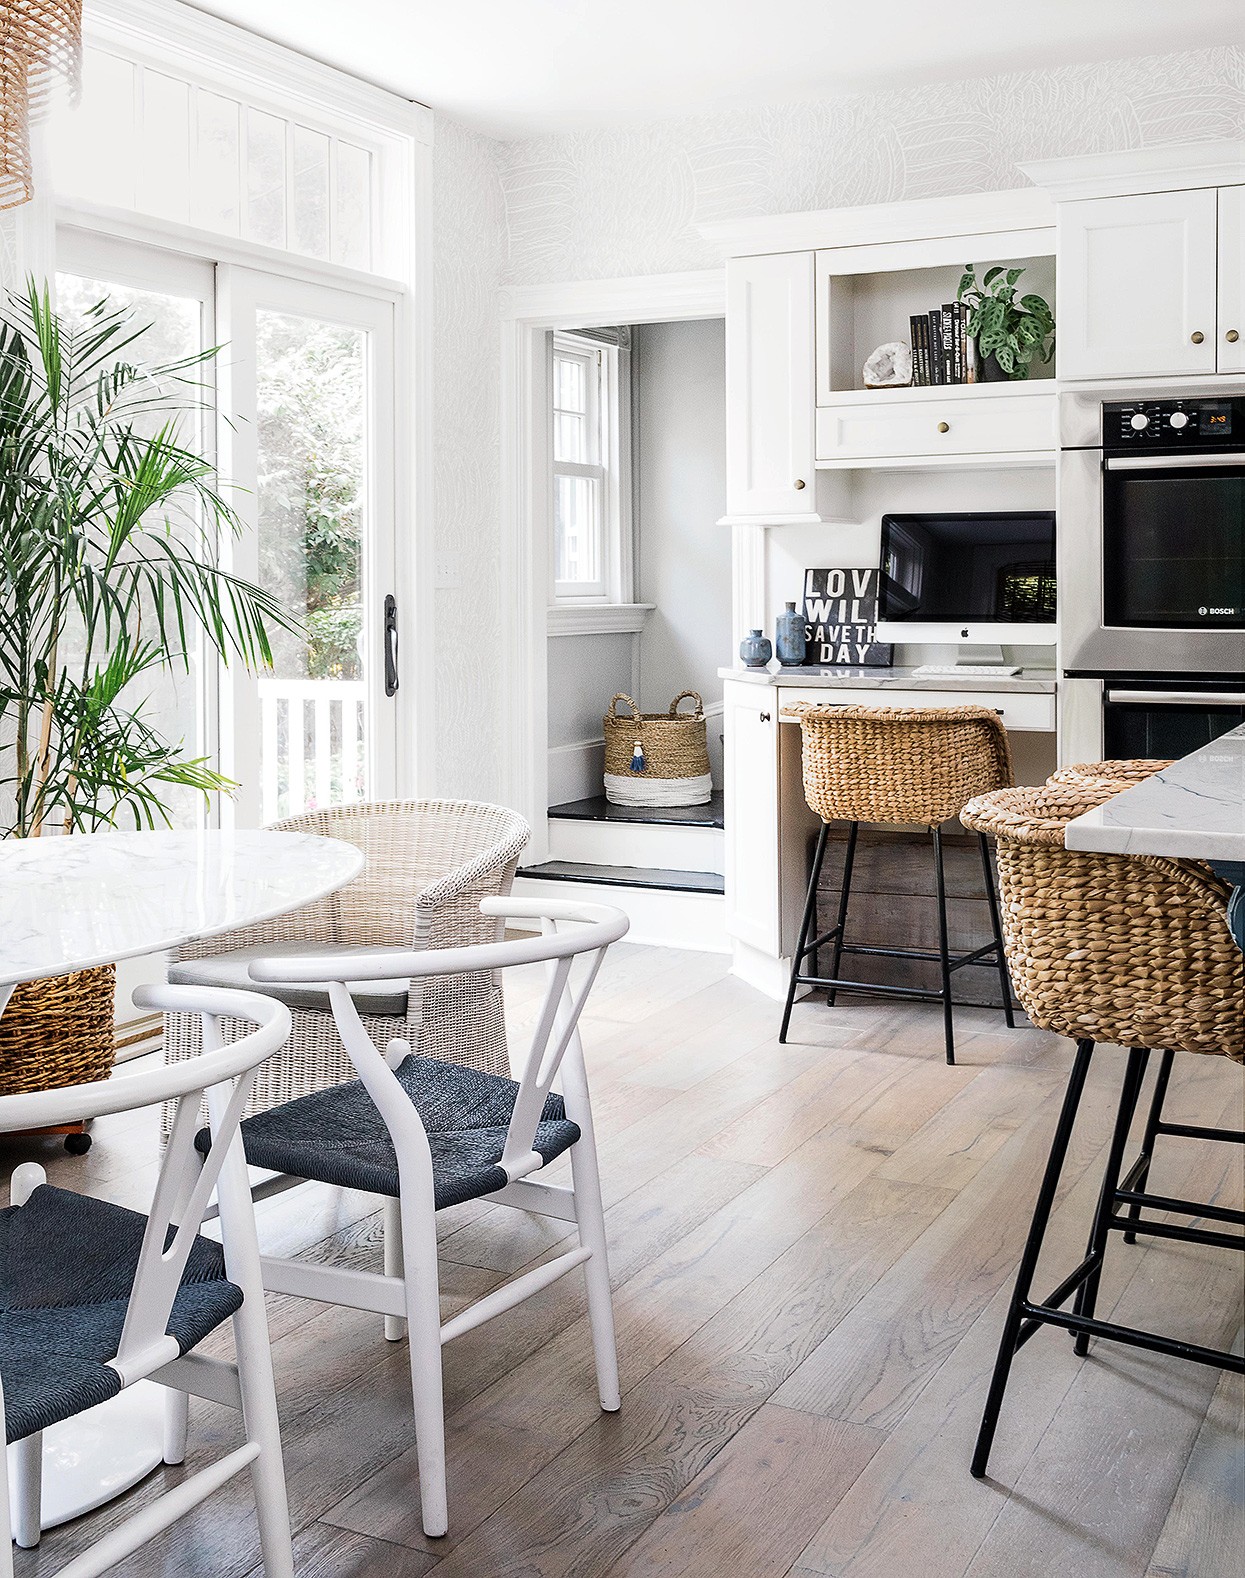 seagrass stools and white shaker kitchen cabinets